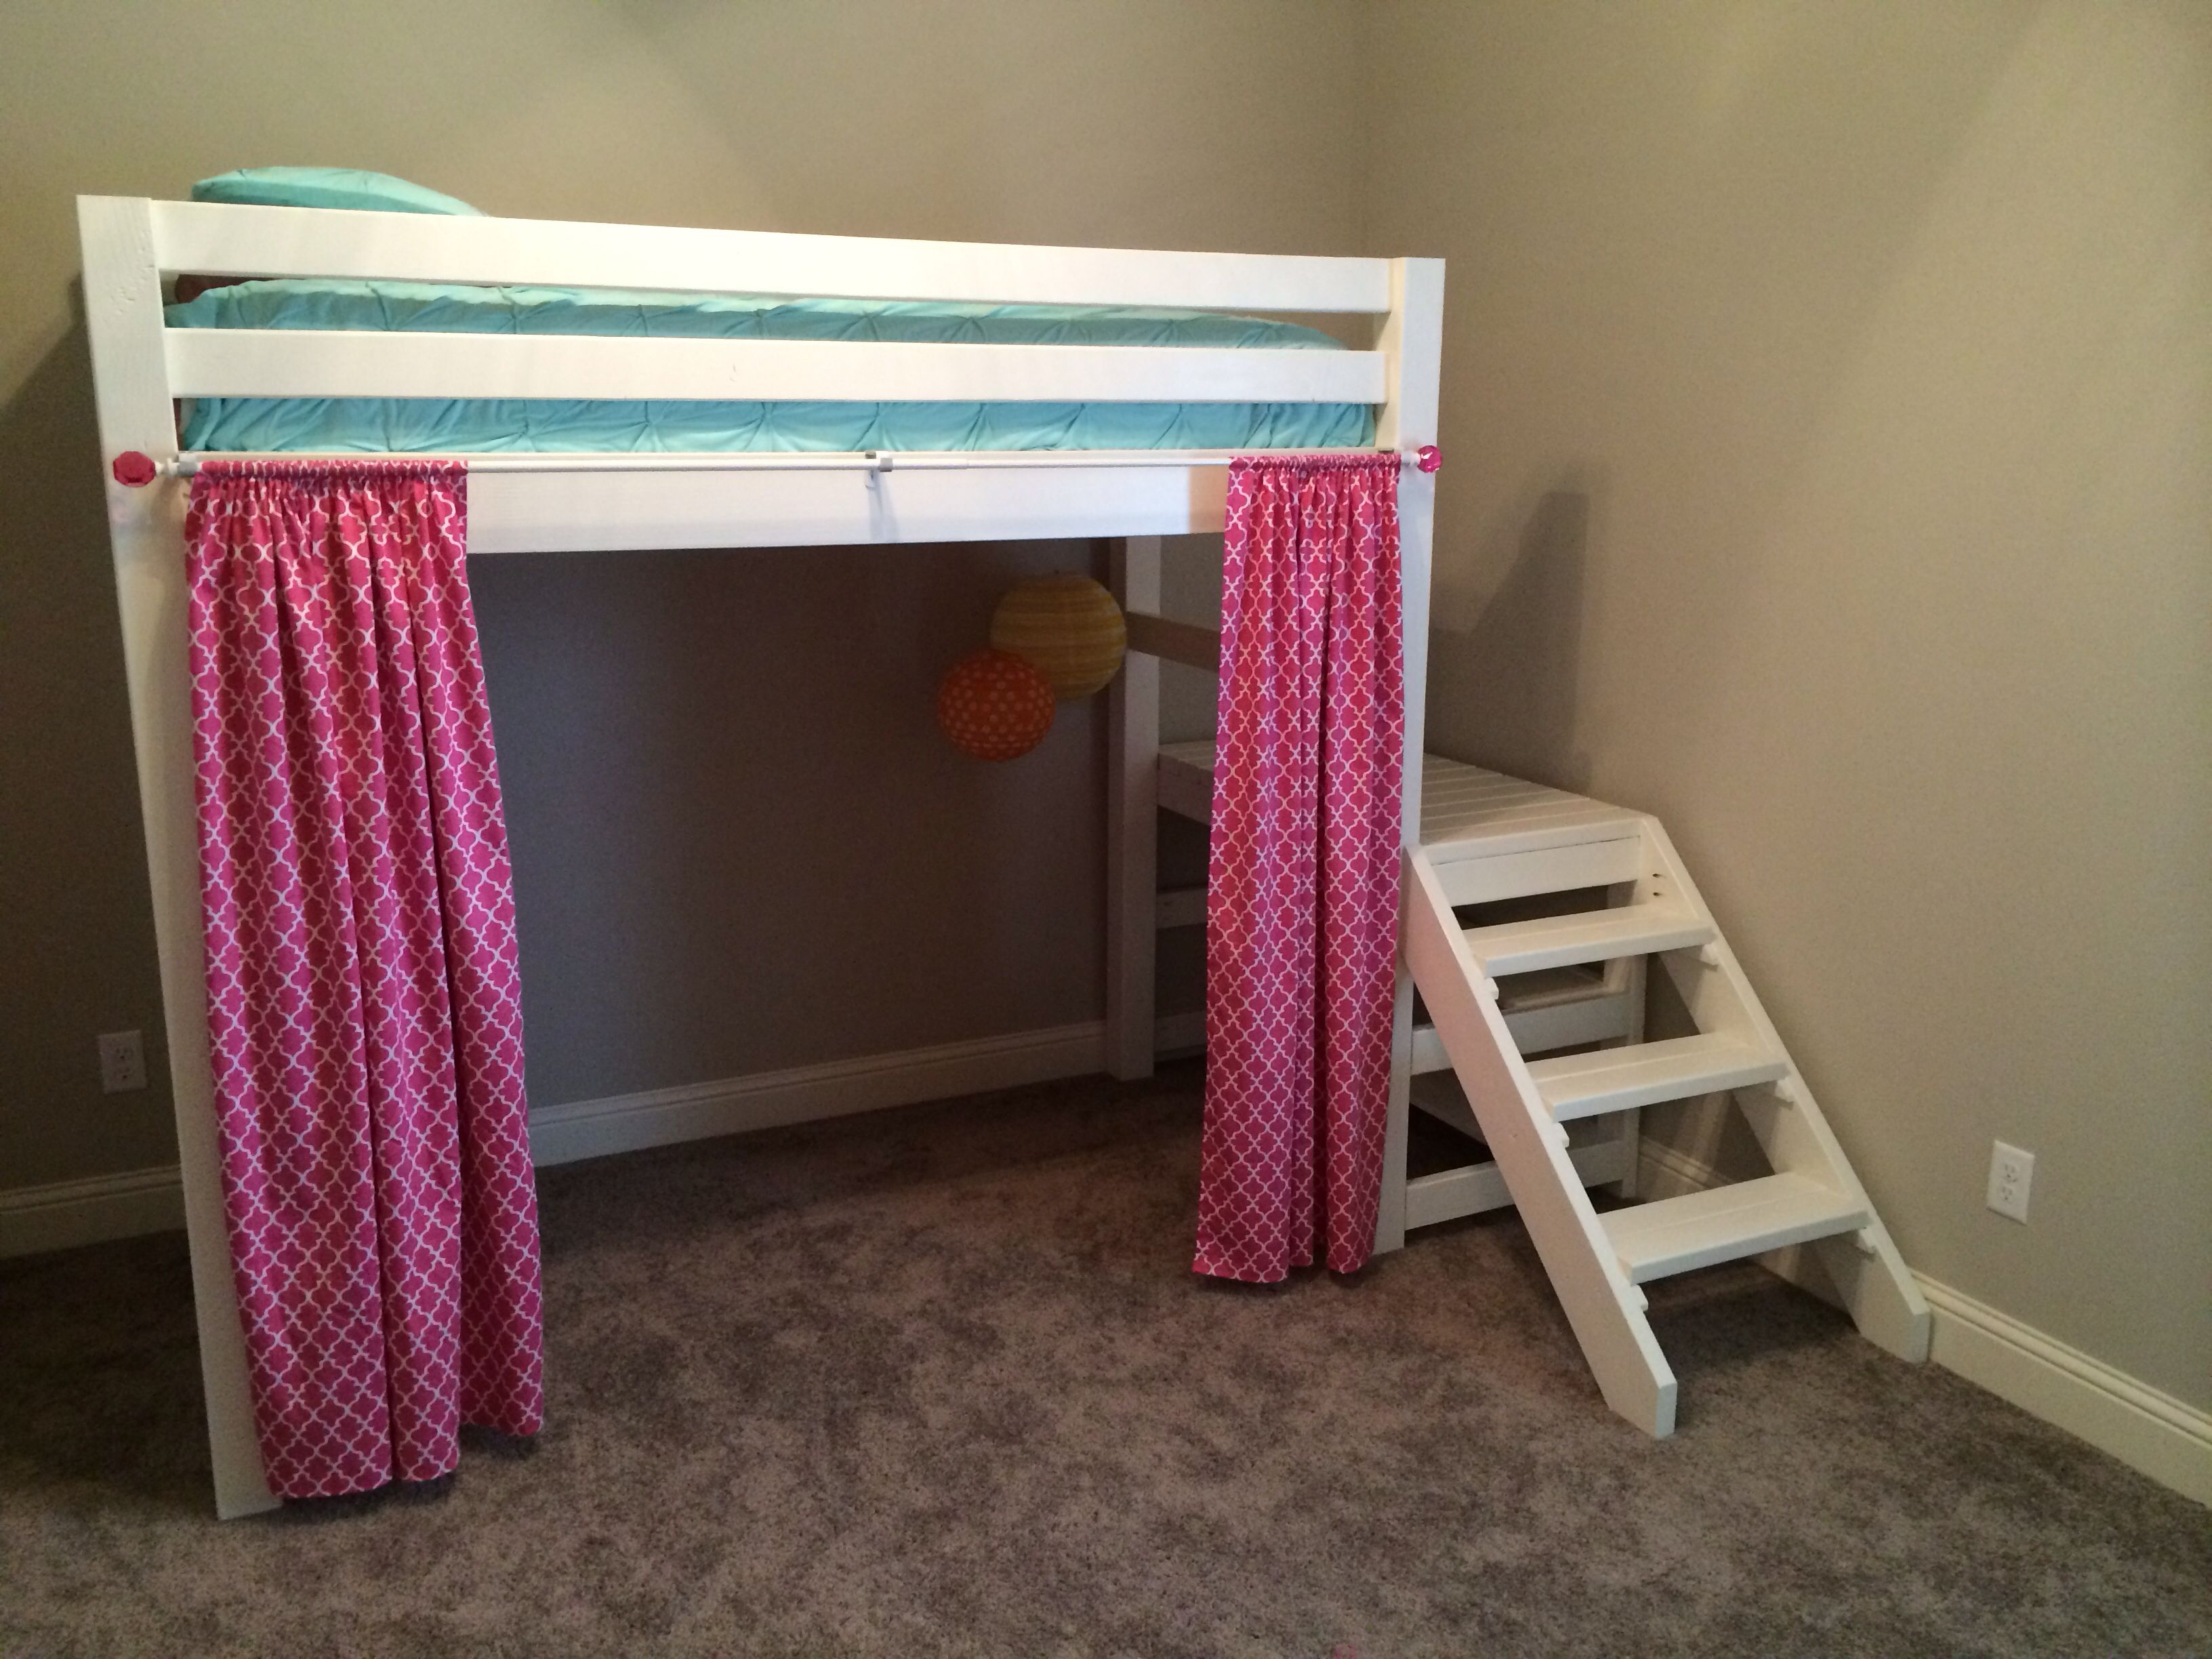 Loft bed with slide plans  Anna White style loft bedjakes bed to buildbut stained  Boys